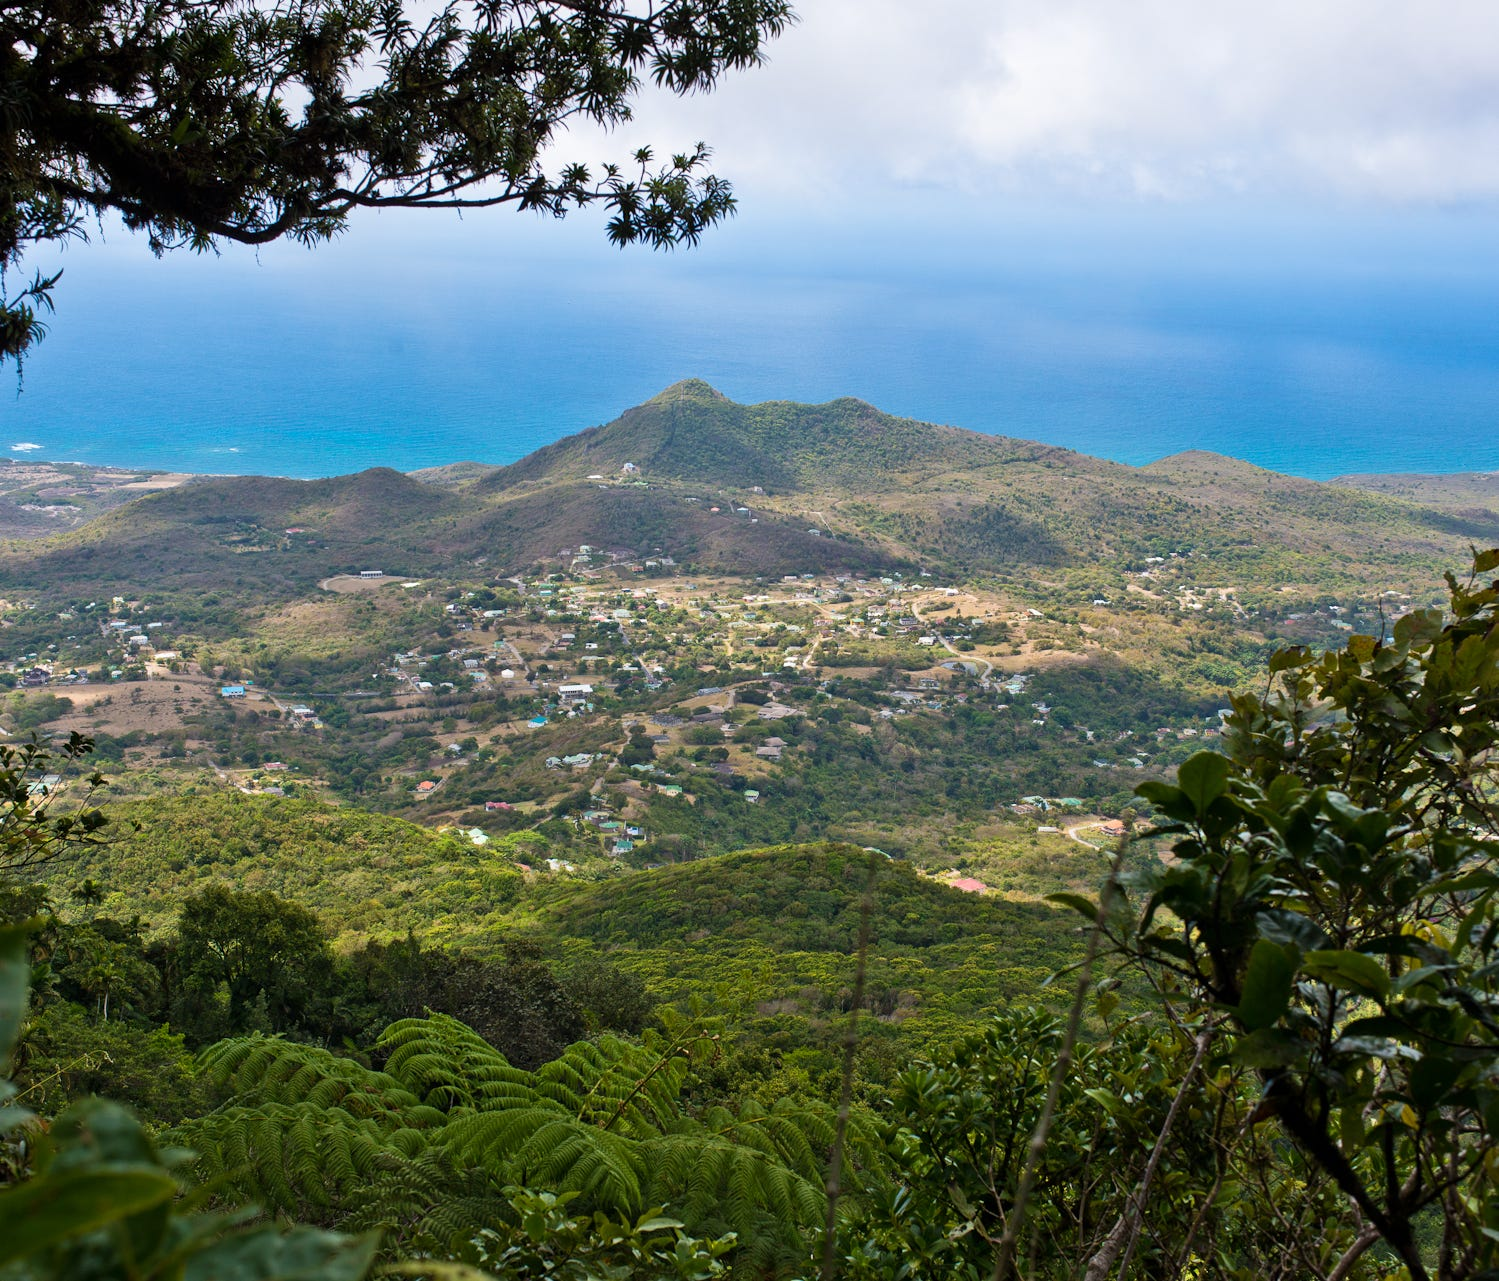 For an exhilarating mountain high, Nevis Adventure Tours offers